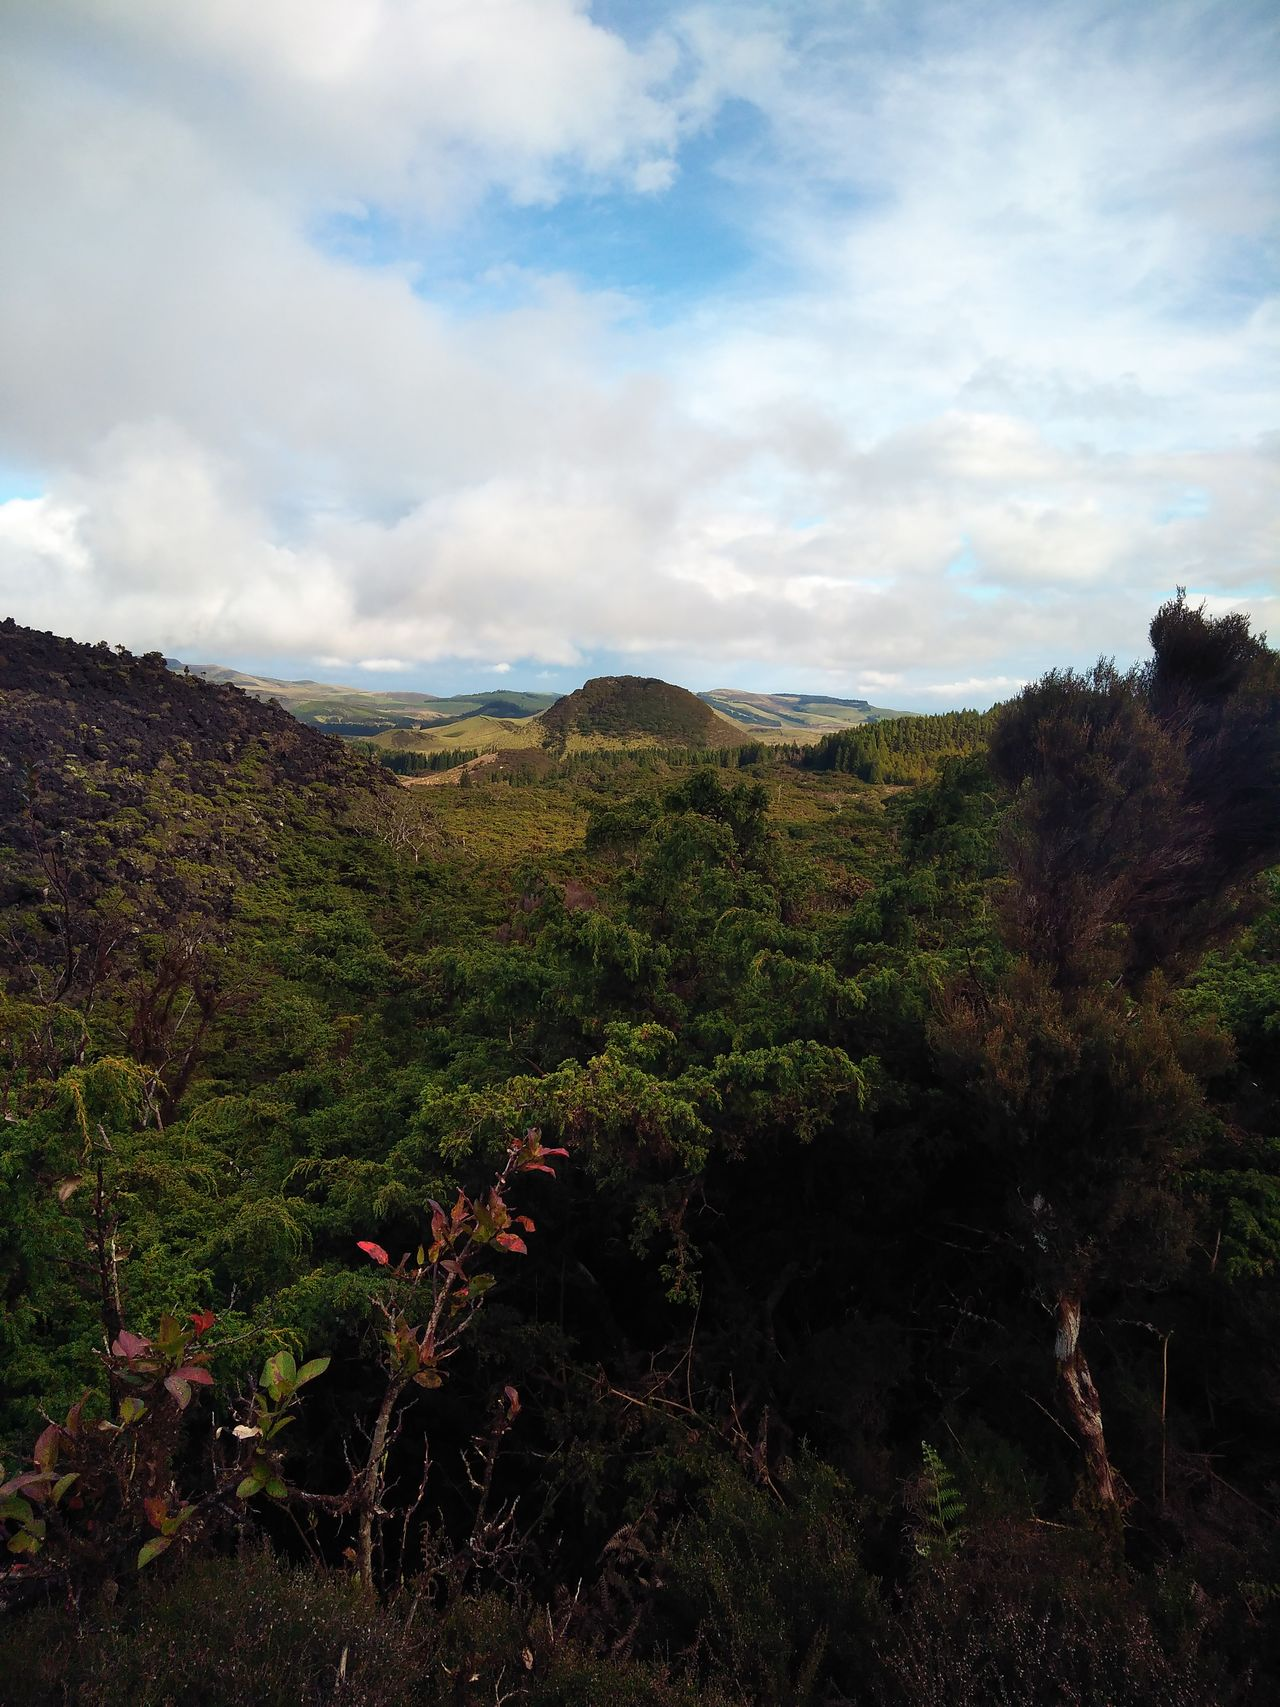 Inactive volcano Nature Beauty In Nature Scenics Leaf Landscape Sky Growth Tranquil Scene Tree Autumn Cloud - Sky Agriculture Idyllic Plant Rural Scene No People Winemaking Outdoors Mountain Day EyeEm Azores Beauty In Nature Eyeem Market EyeEmNewHere